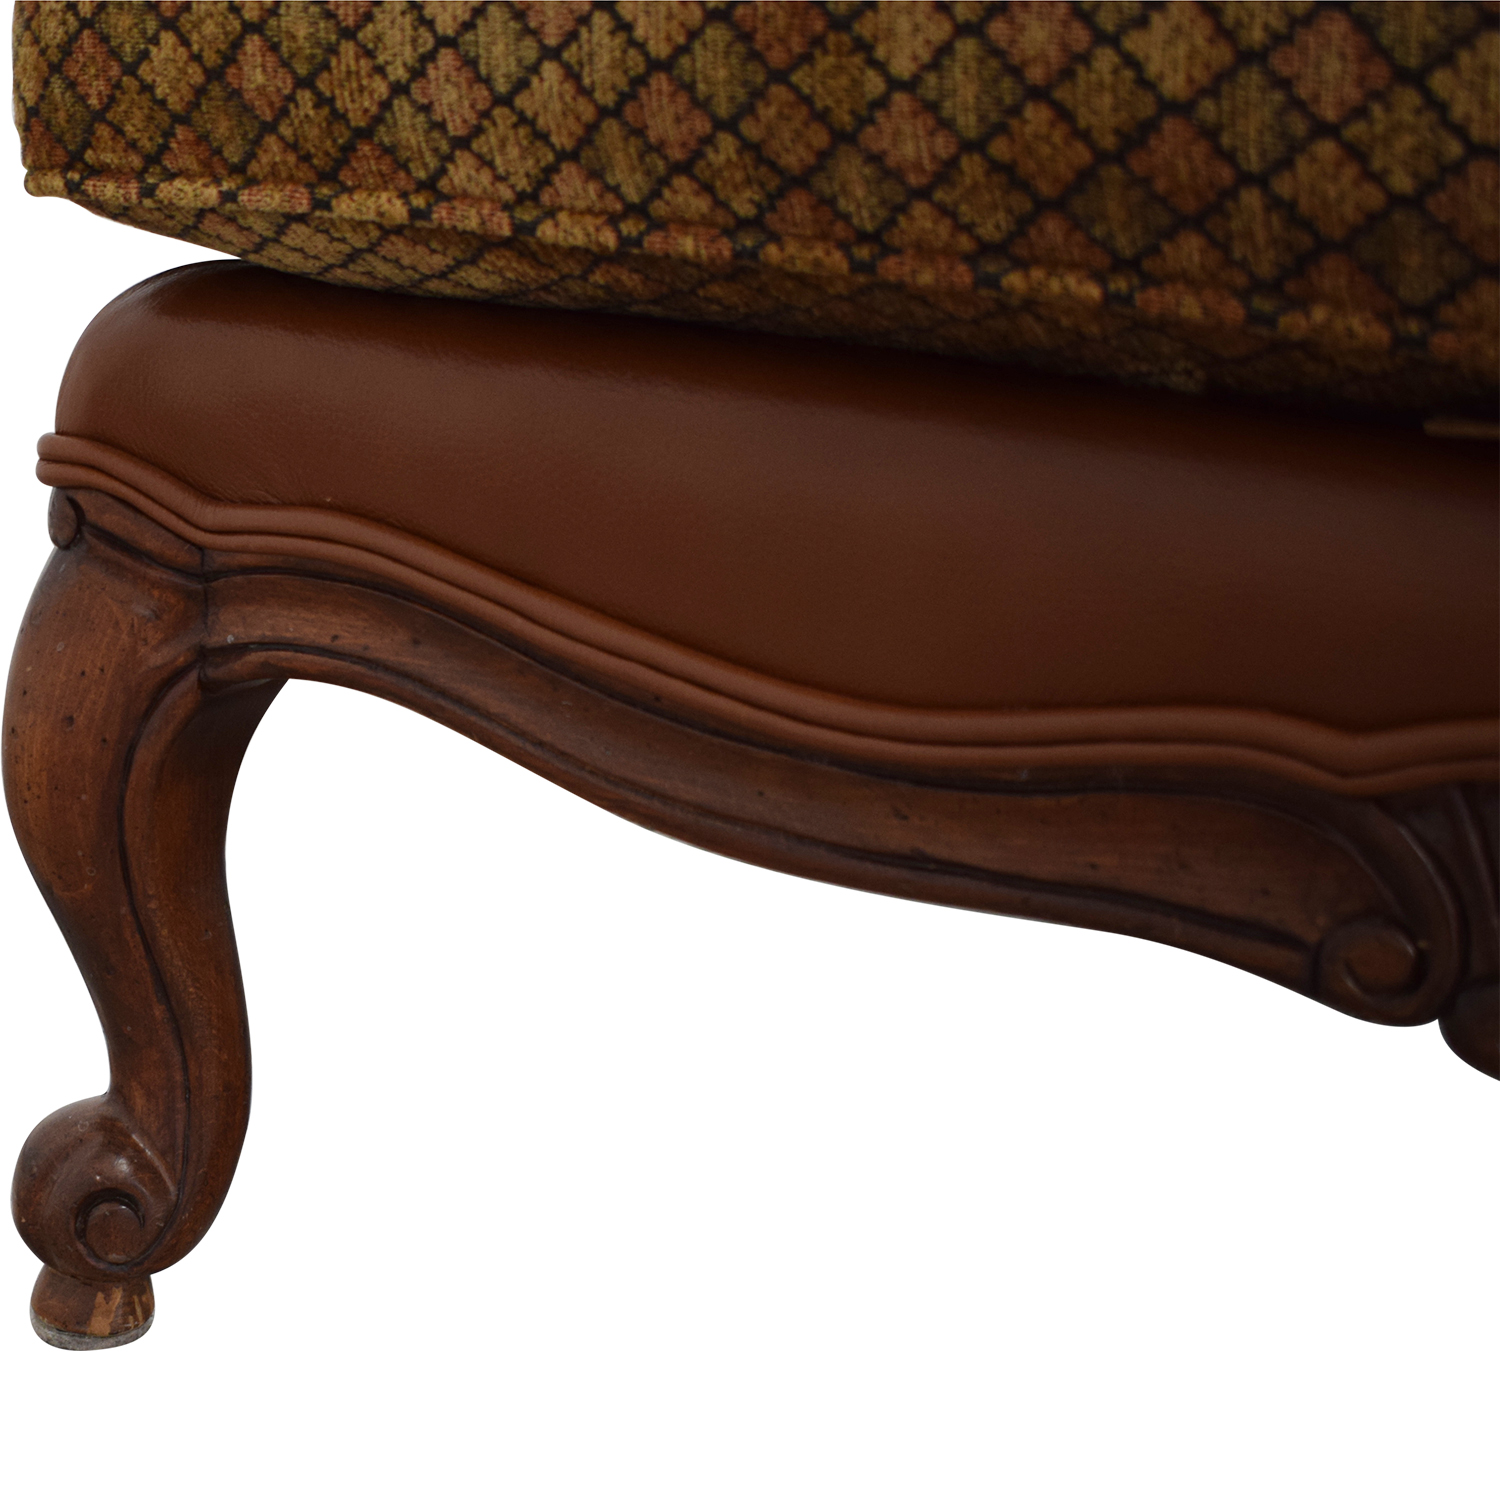 Ethan Allen Ethan Allen Upholstered Accent Chair dimensions